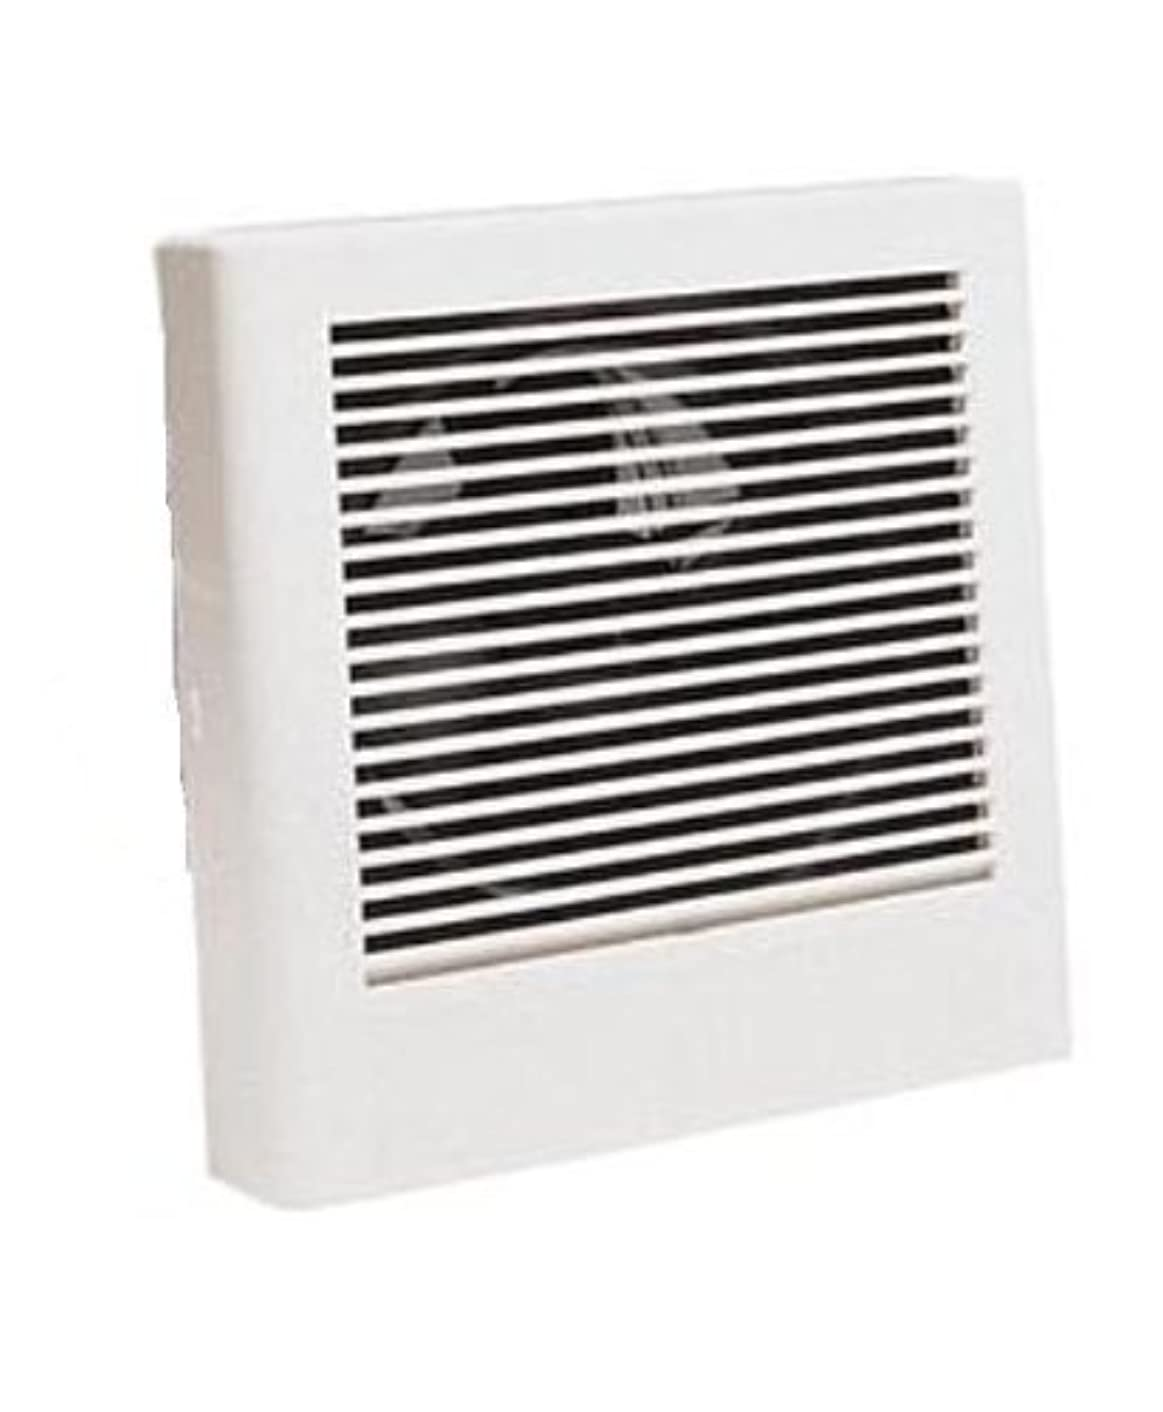 Panasonic FV-NLF06G WhisperLine 6-Inch Duct Inlet Grille